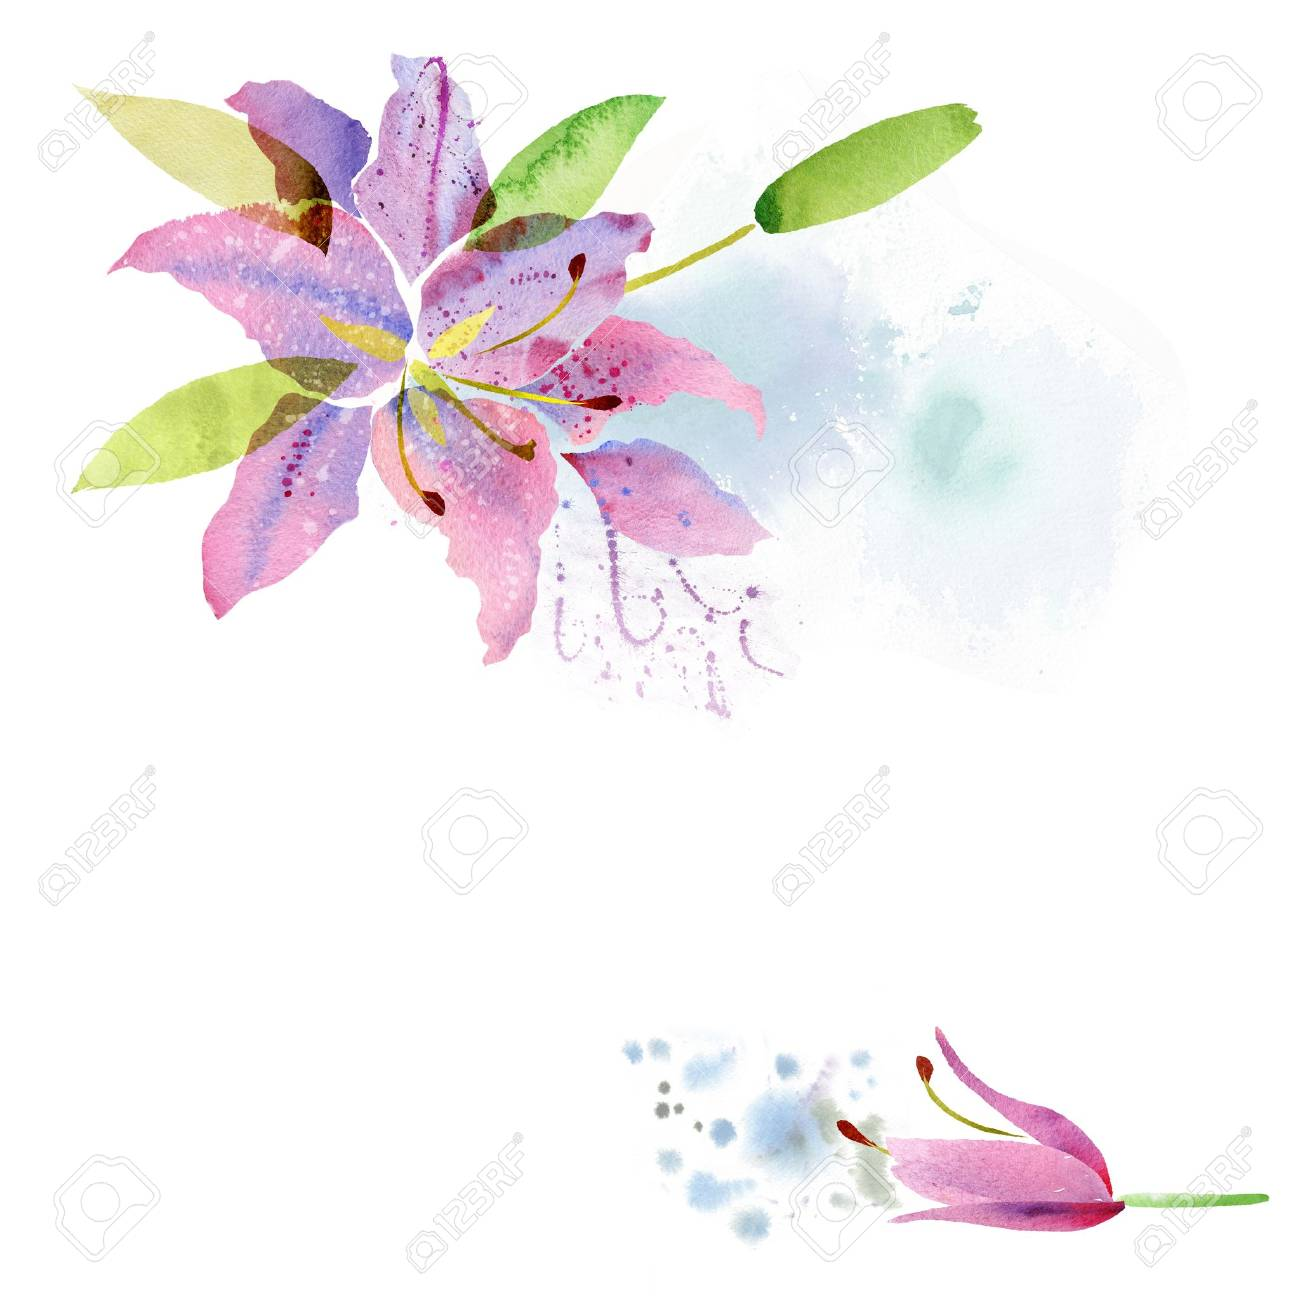 Beautiful background with watercolor flowers lily - 60343685